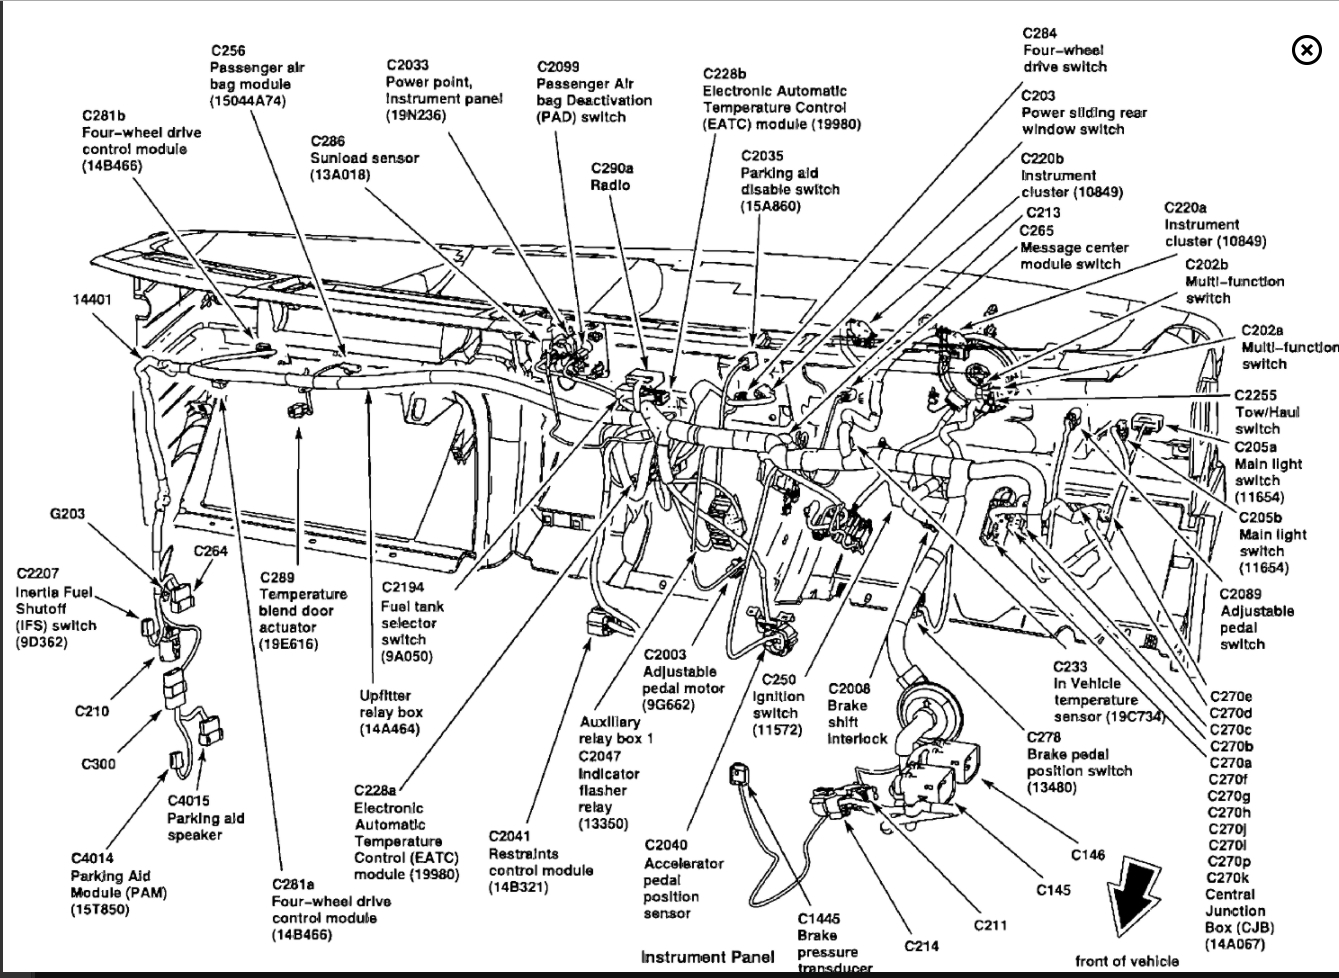 hight resolution of 1995 ford f350 fuel system diagram wiring diagram expert 1995 ford f350 fuel system diagram wiring